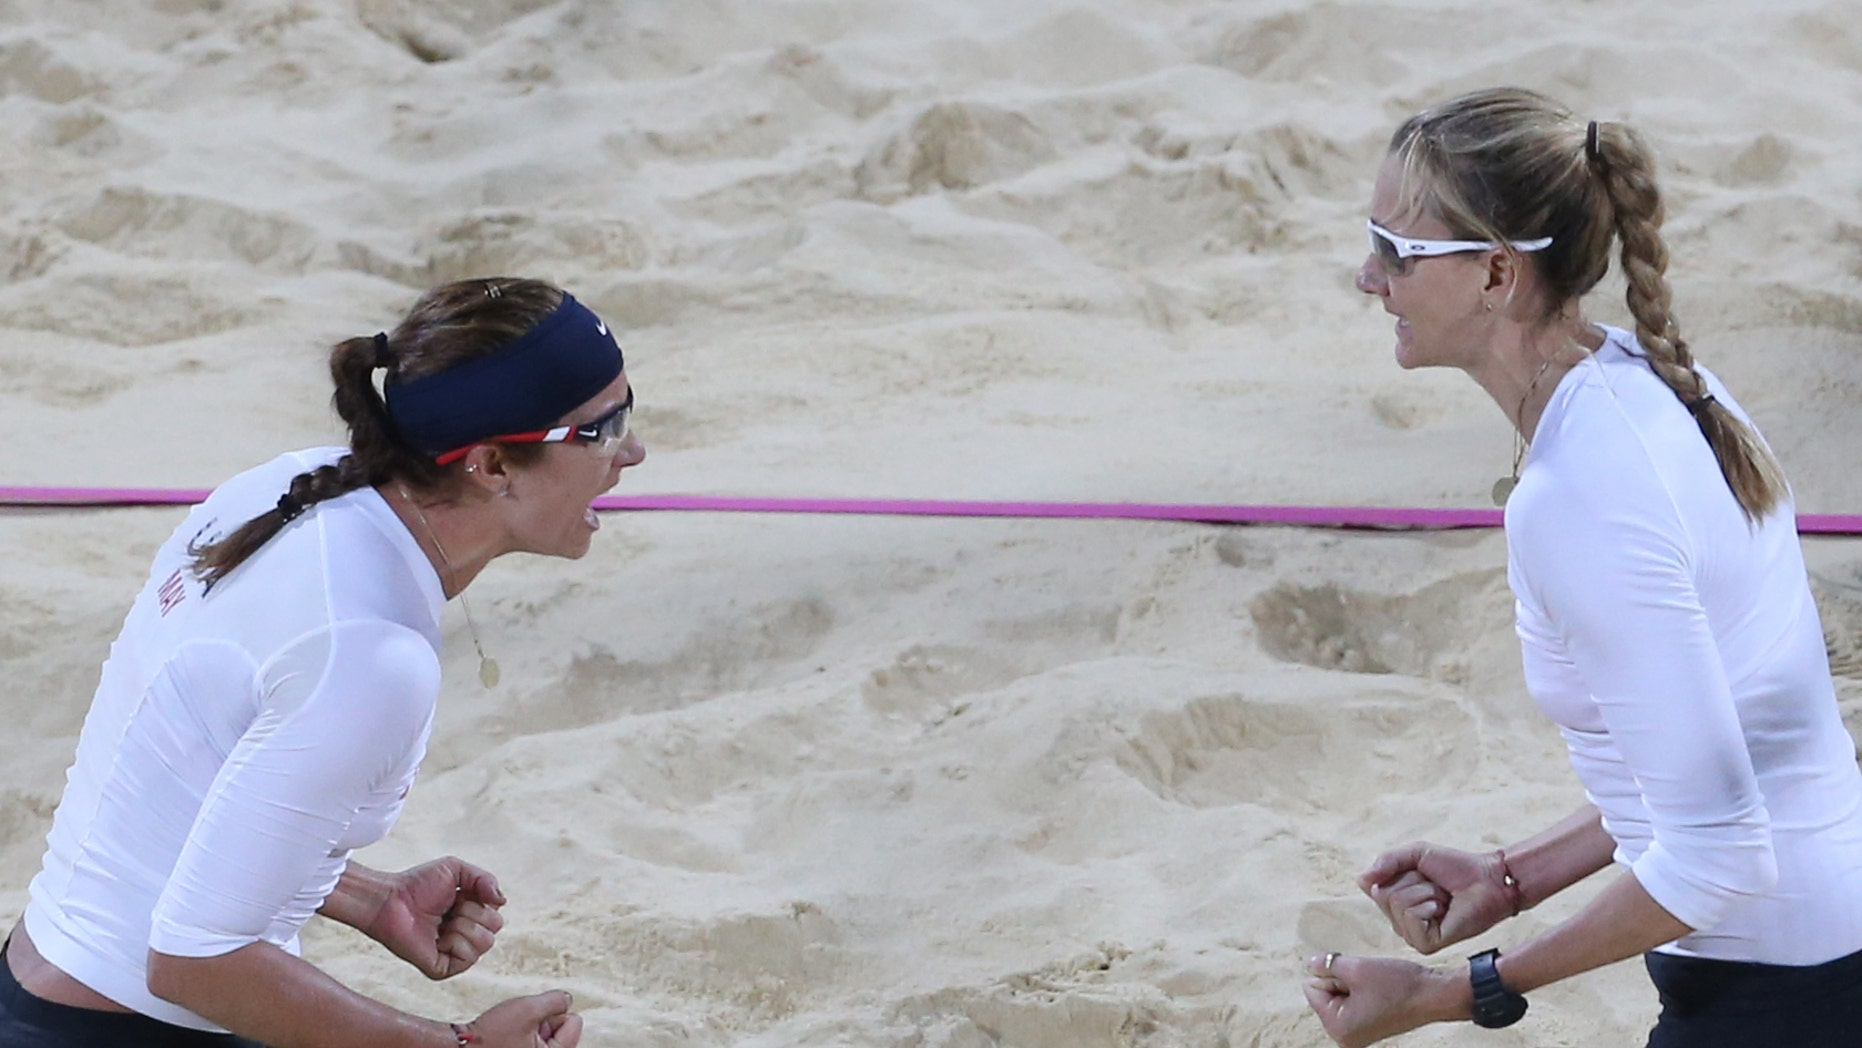 July 31, 2012: Kerri Walsh, right, and Misty May-Treanor, left, of US celebrate victory after their Beach Volleyball match against Czech Republic at the 2012 Summer Olympics in London.